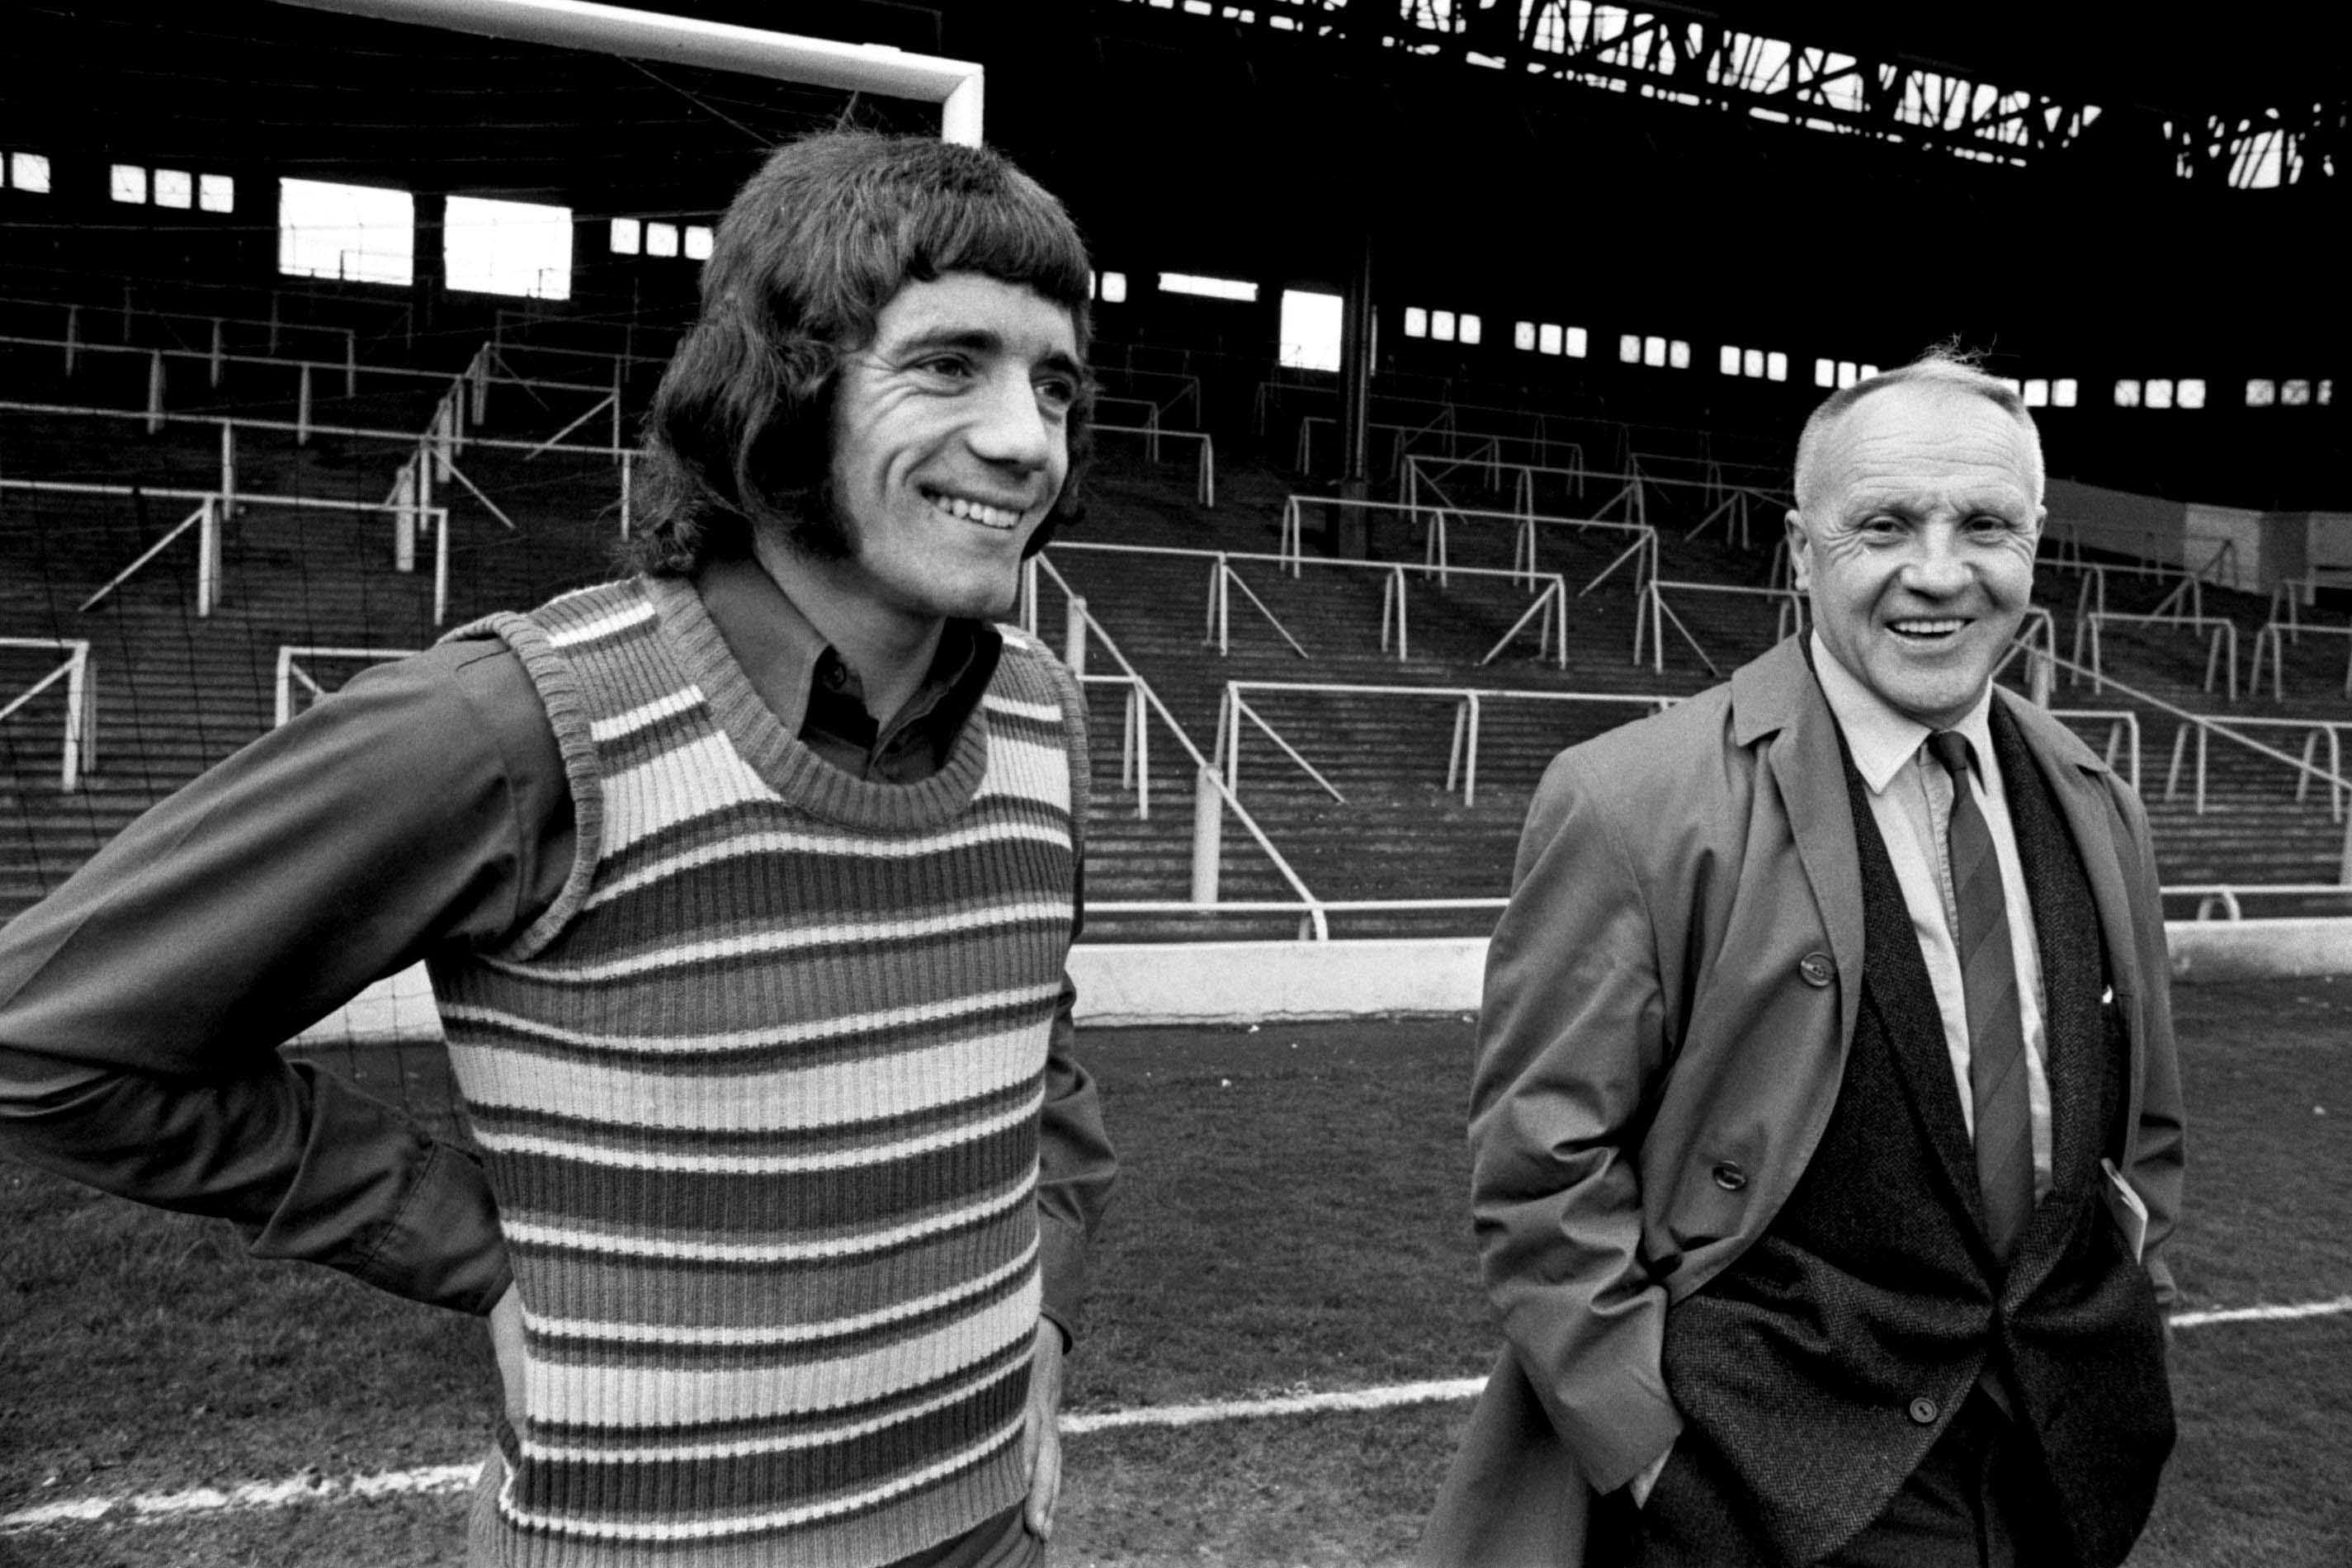 Soccer - Kevin Keegan Signs For Liverpool